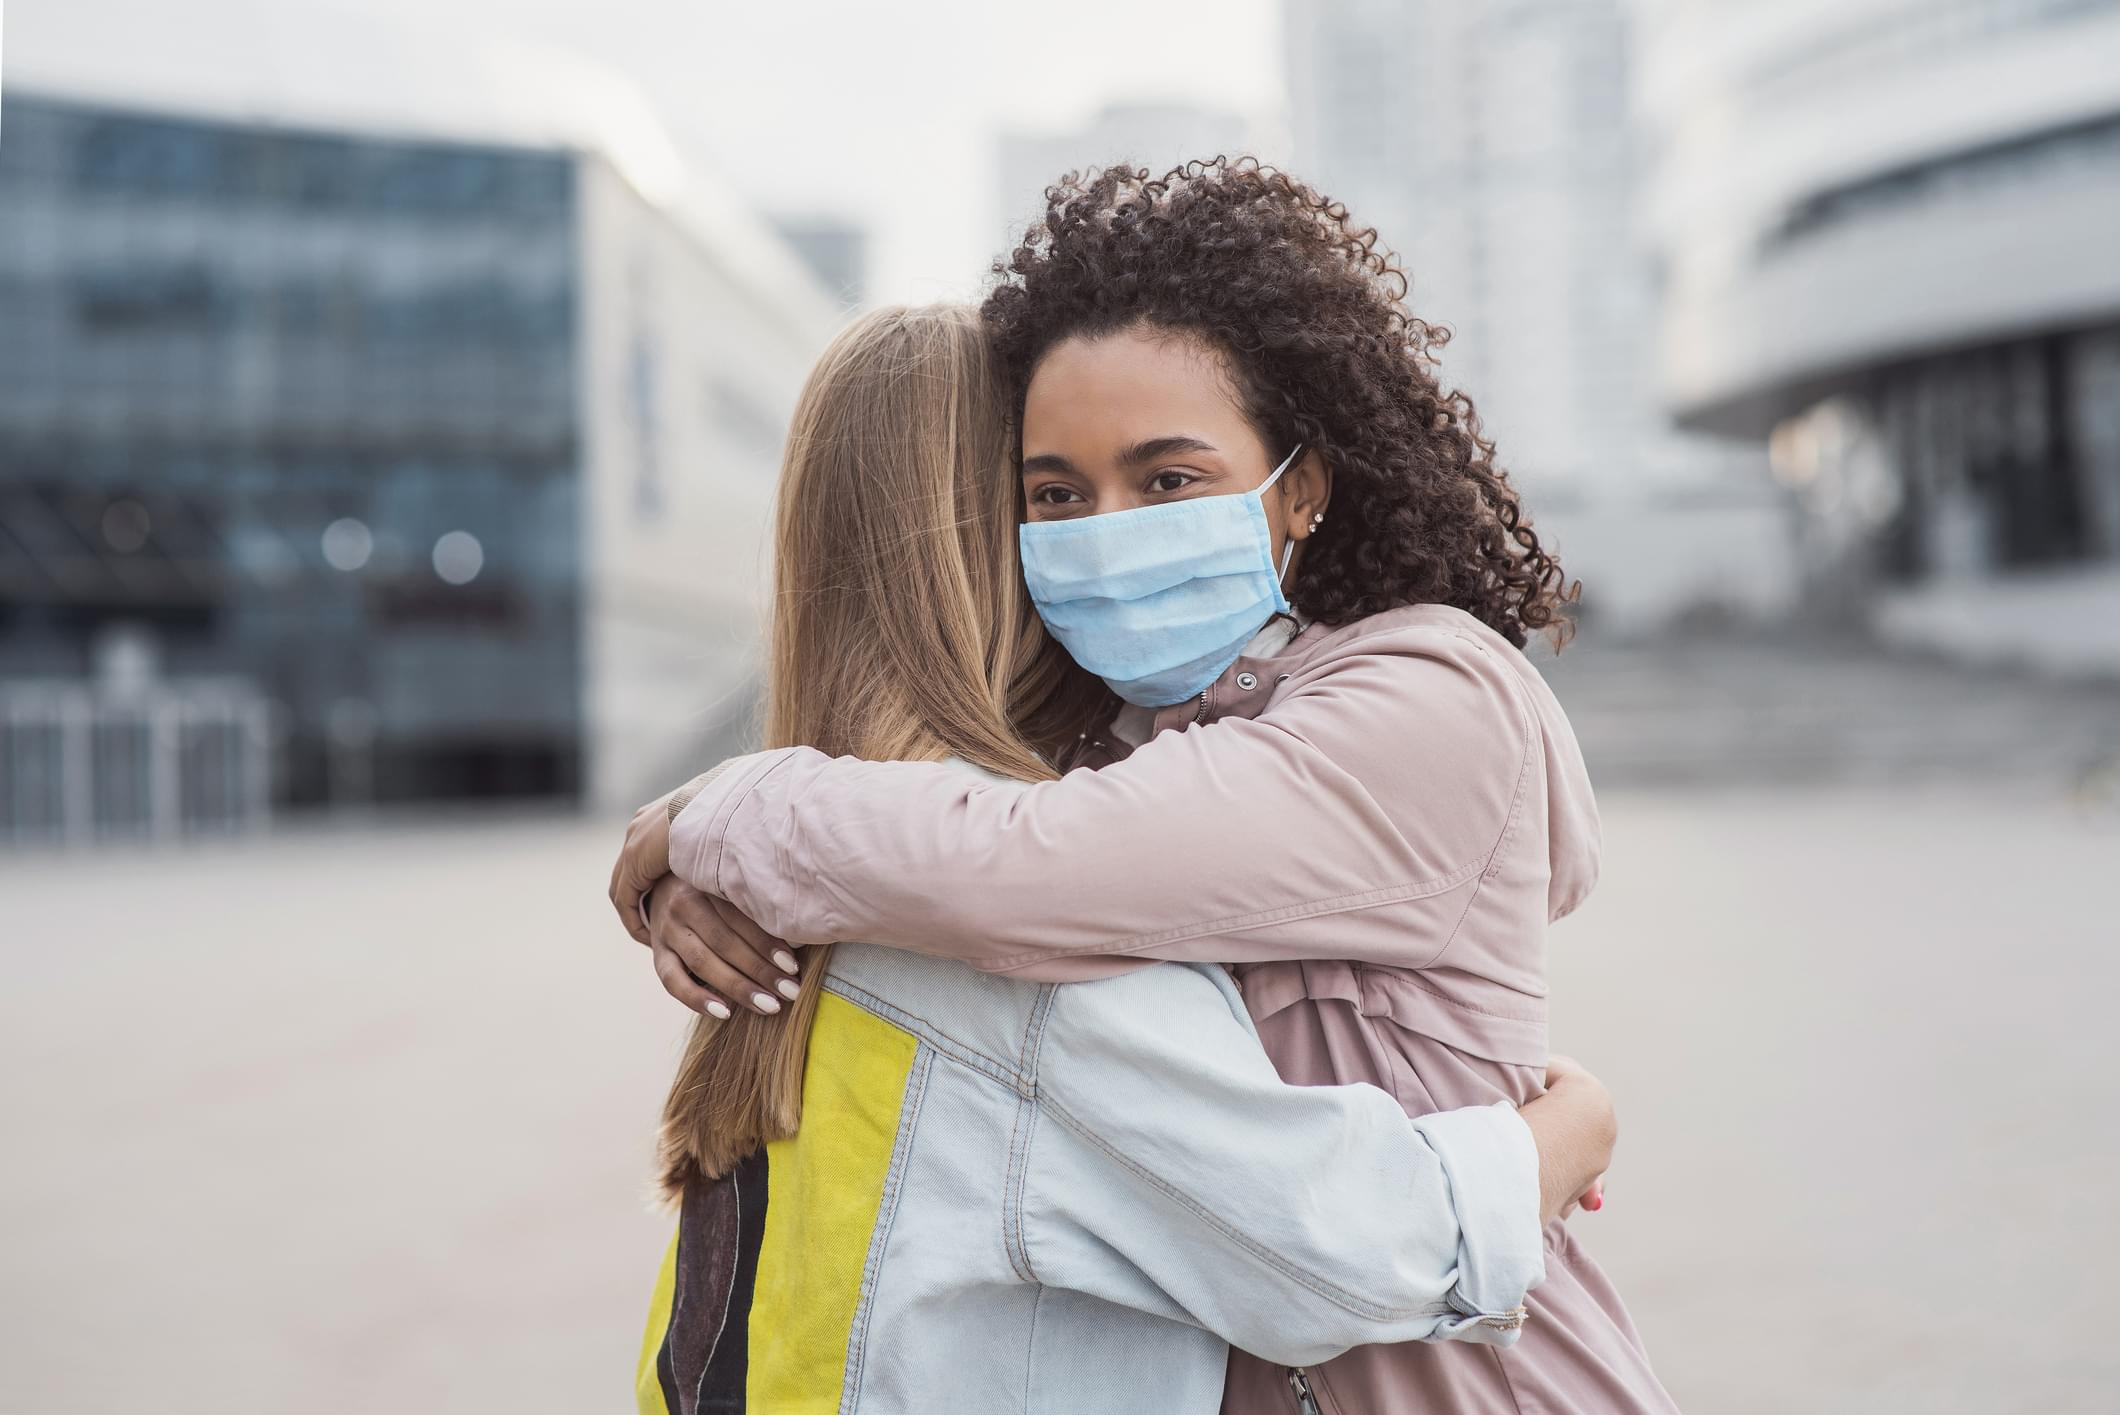 The Do's and Don't In A Post-Pandemic World